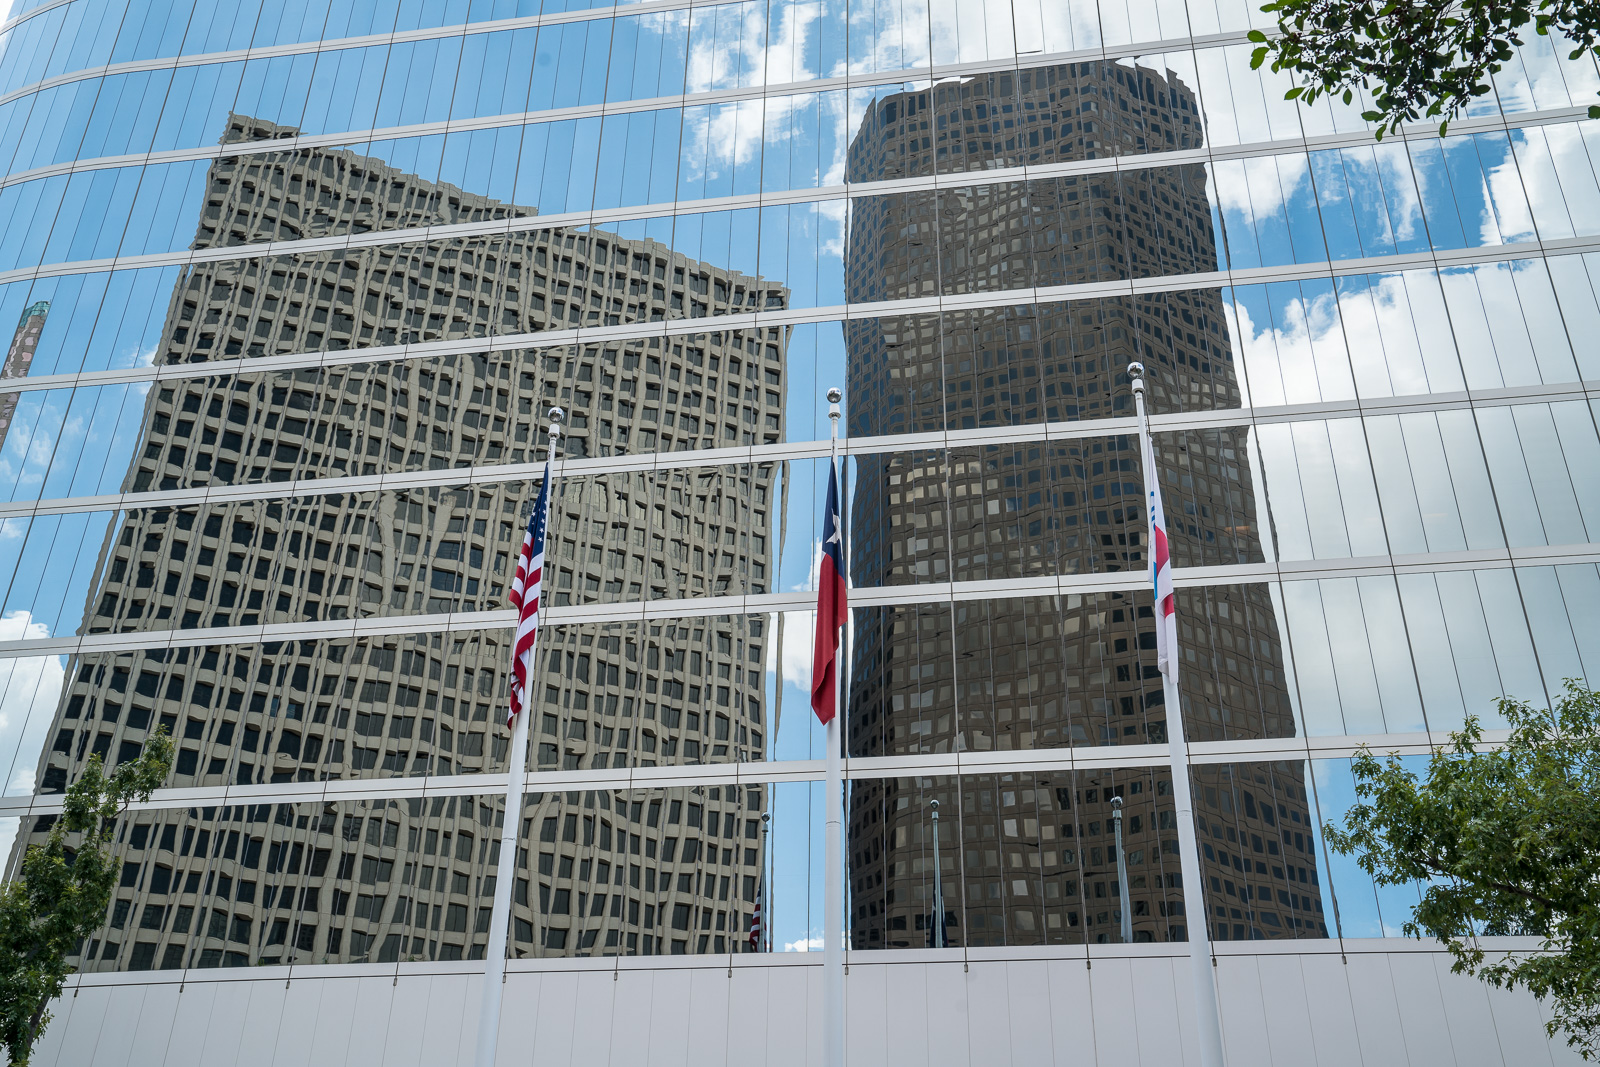 Houston, Chevron Complex, high rise, downtown, cityscape, reflected, mirrored glass, building, clouds, sky, , photo